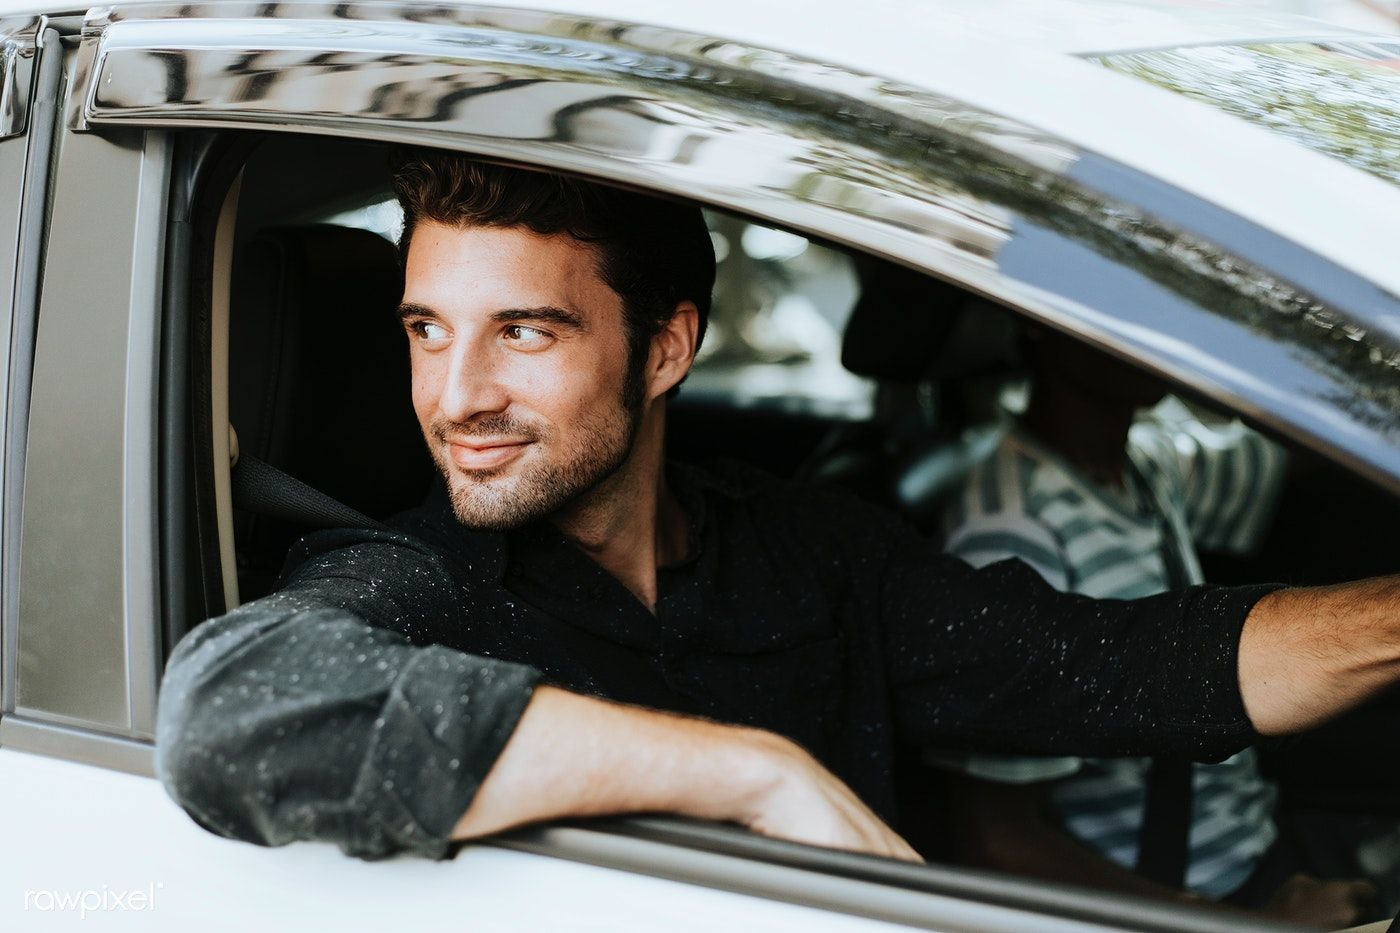 Download Premium Image Of Handsome Male Driver Sitting In A Car 560912 In 2020 Driving Photography Small Luxury Cars Poses For Men